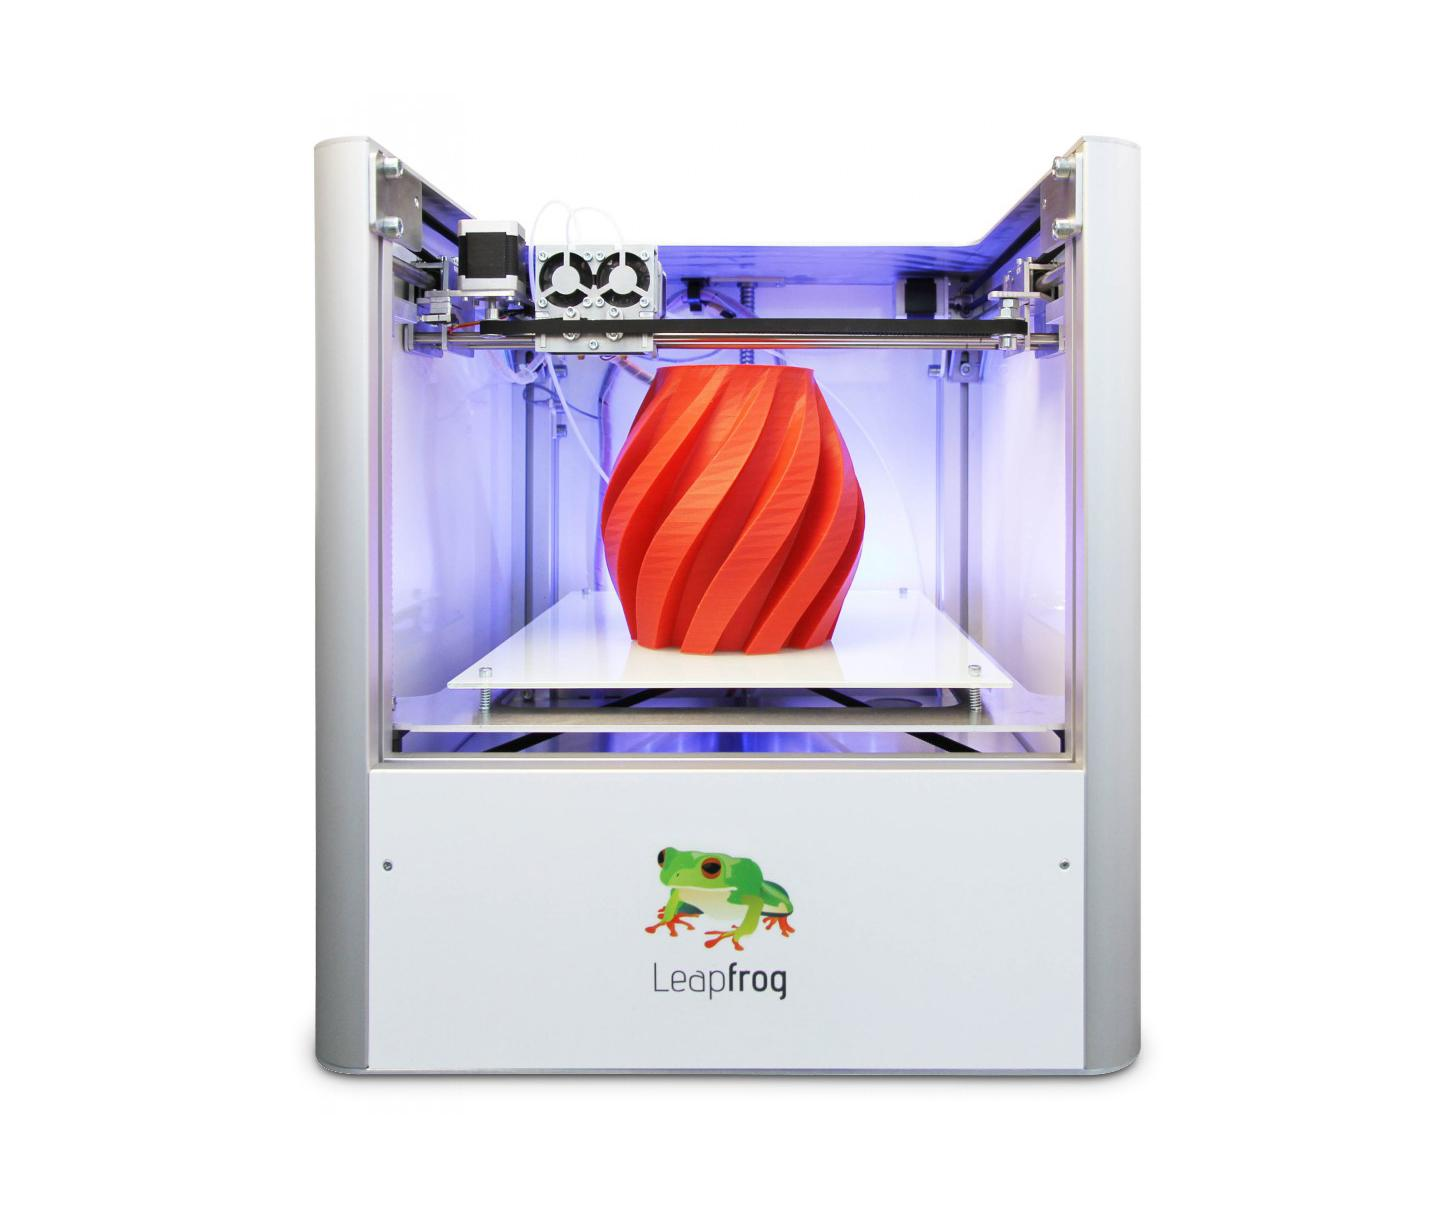 Leapfrog 3D Printer Creatr 2014